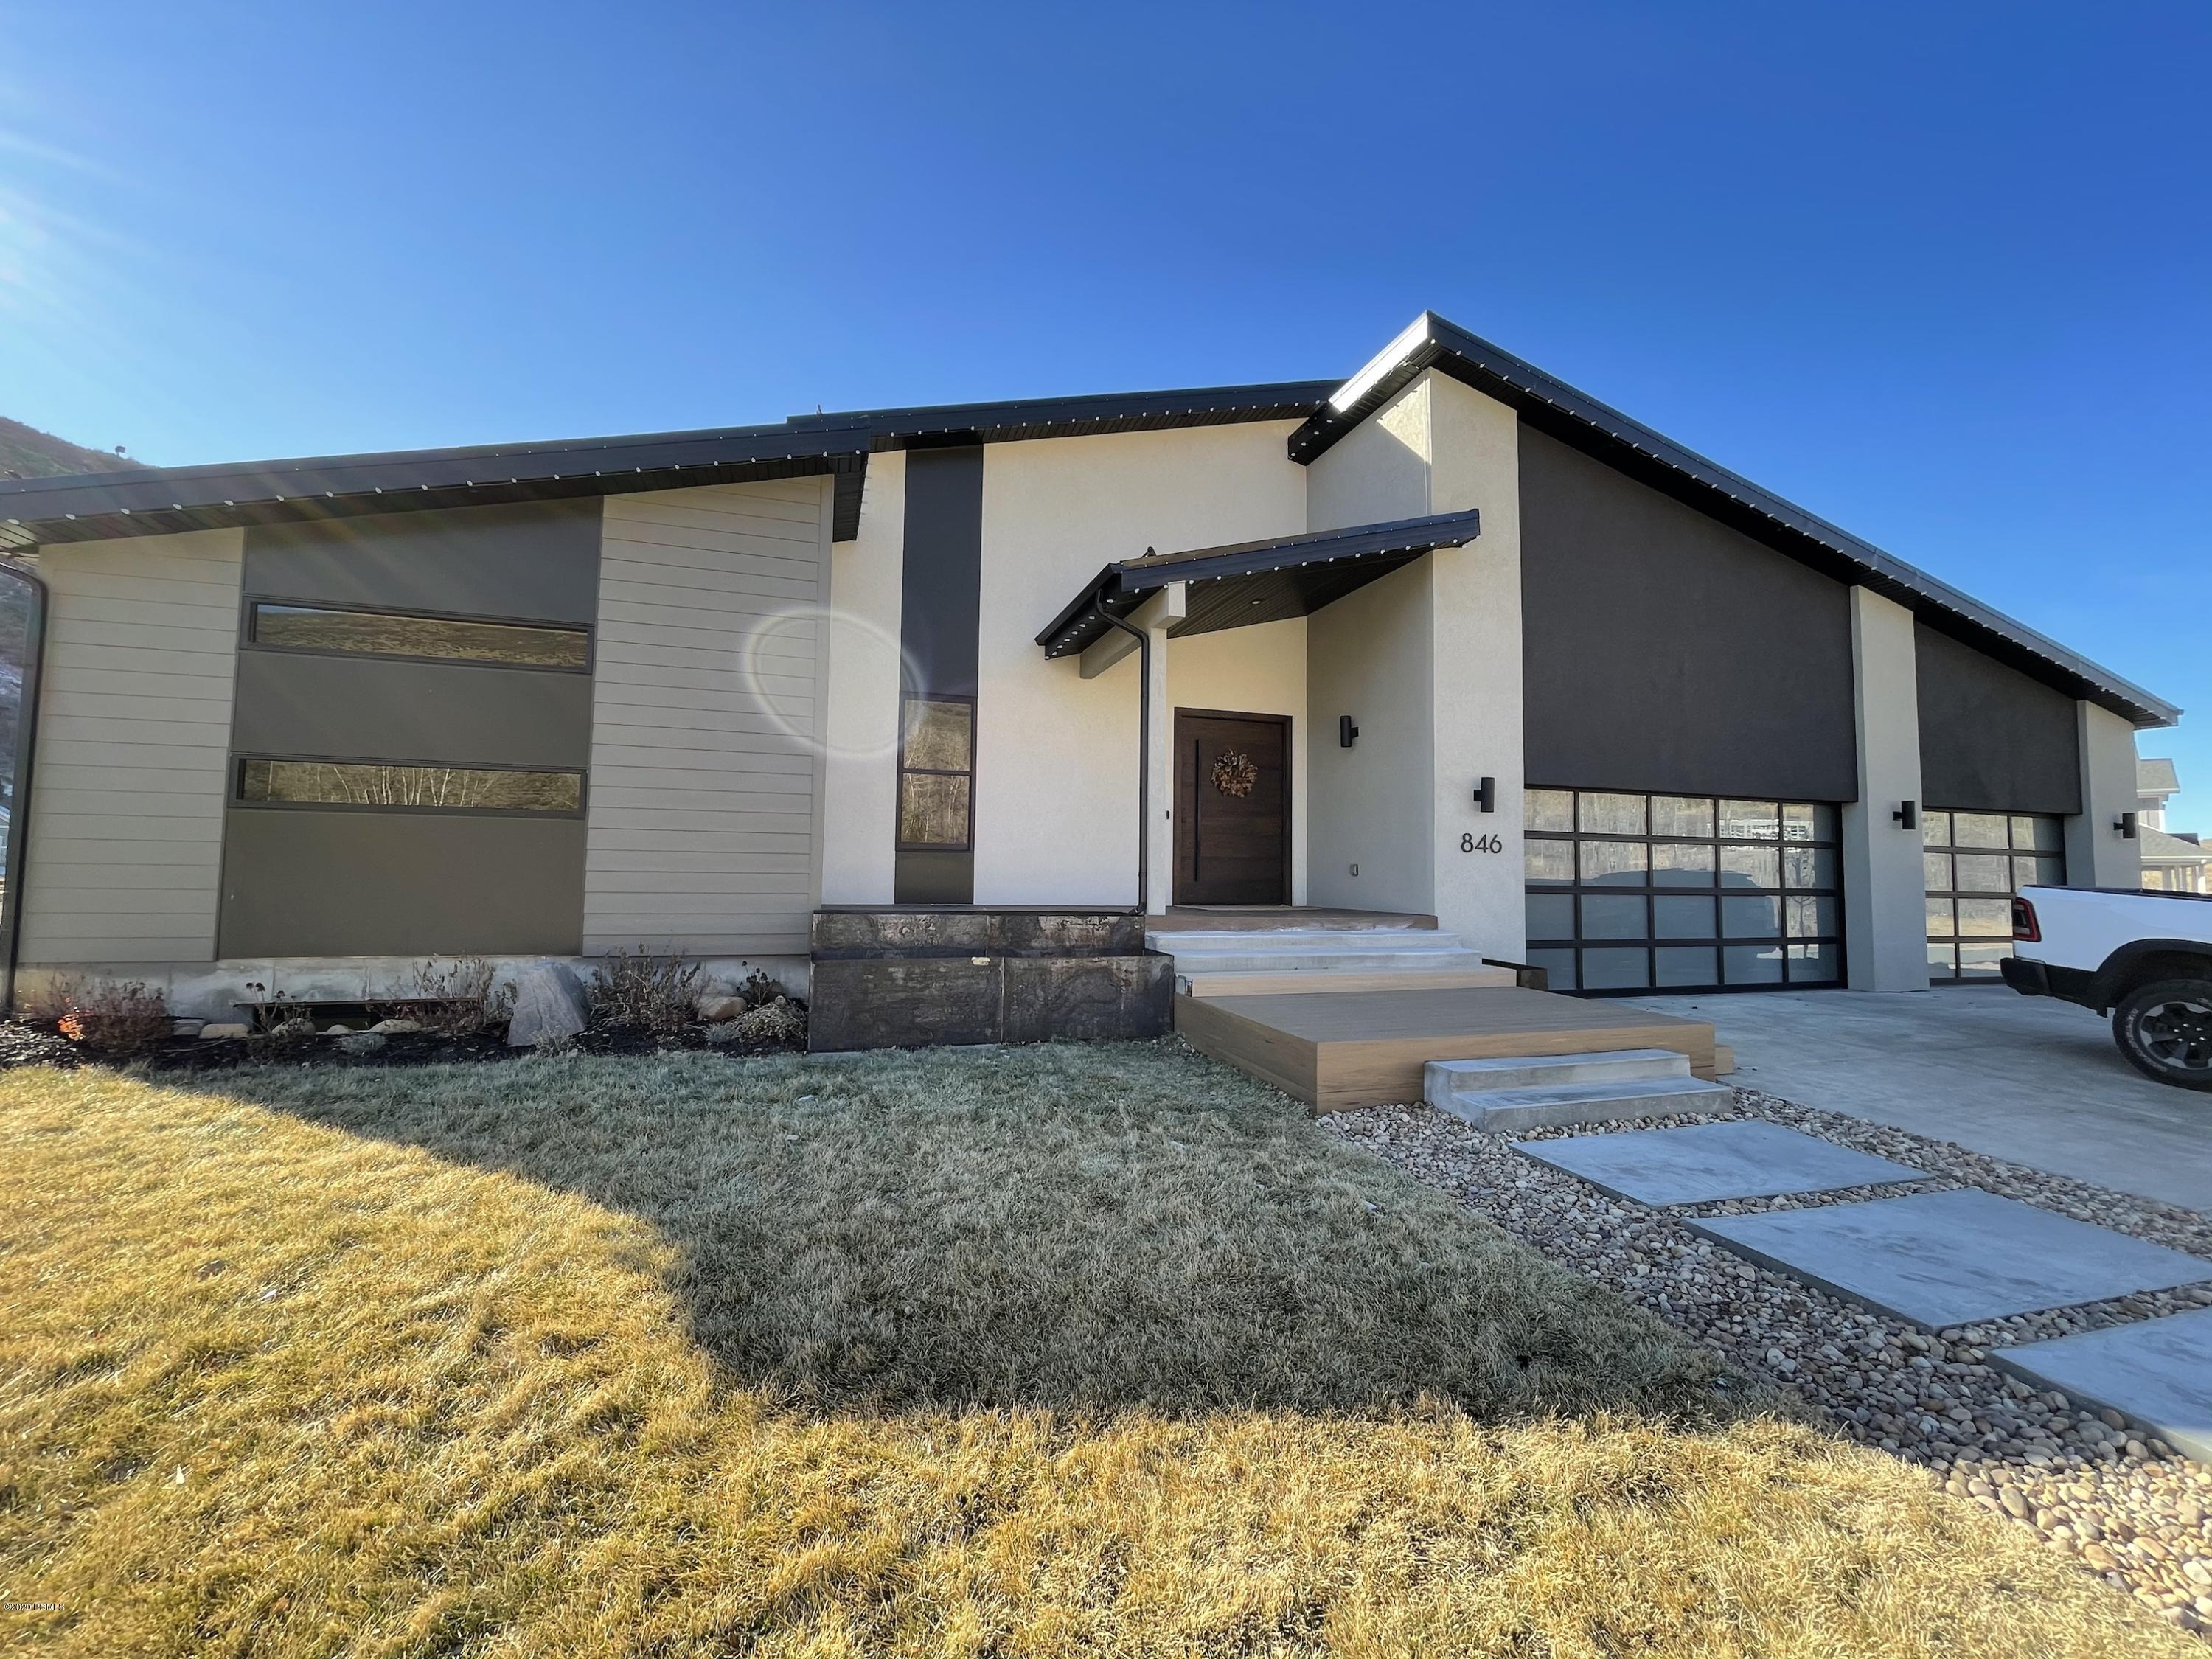 846 270, Kamas, Utah 84036, 5 Bedrooms Bedrooms, ,4 BathroomsBathrooms,Single Family,For Sale,270,12004567